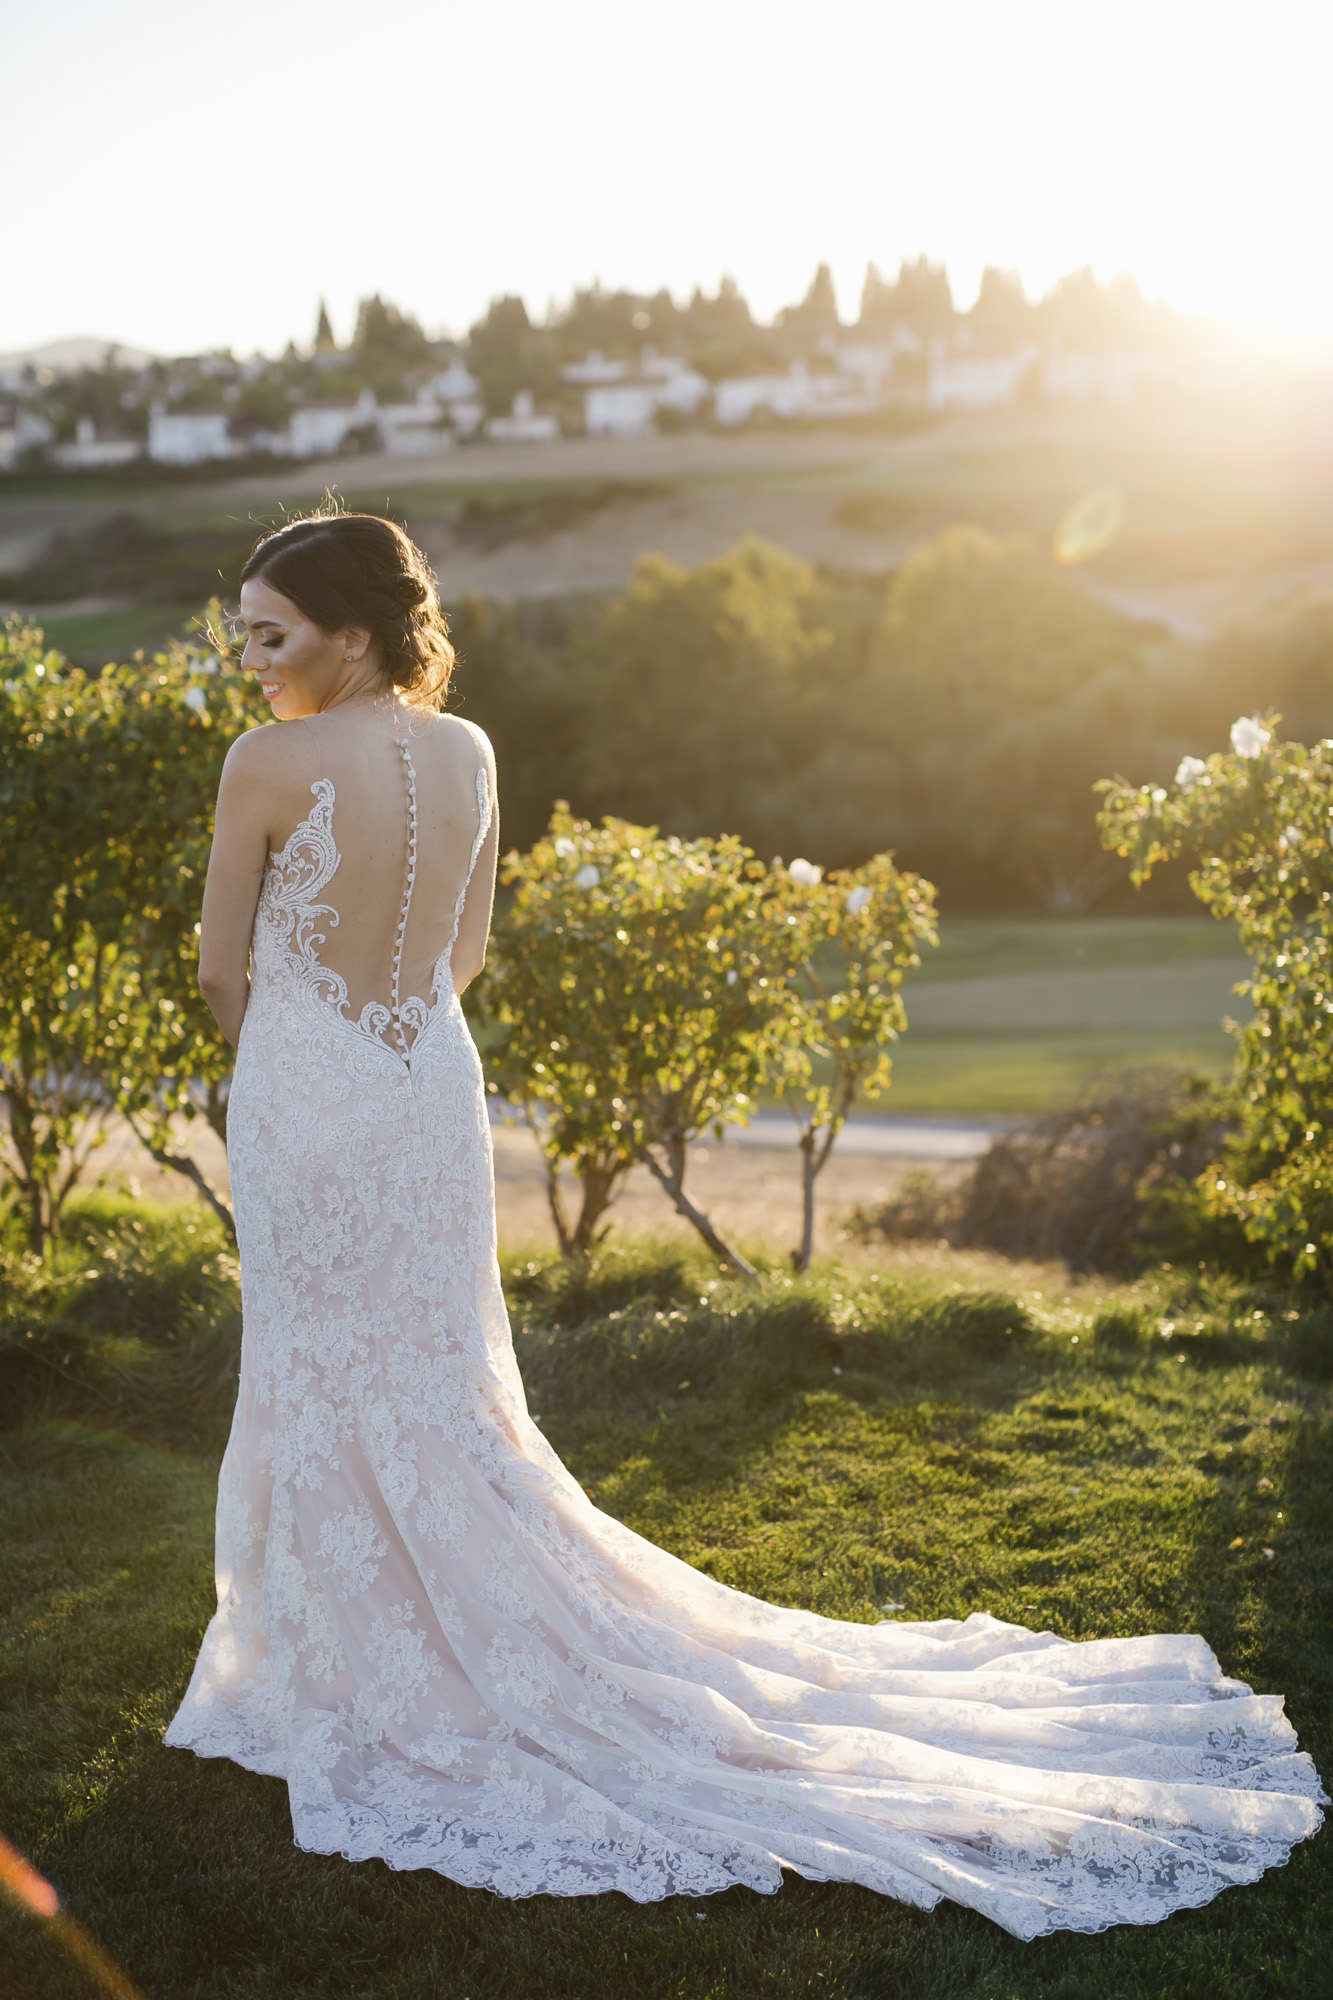 A bride shows off the back of her wedding dress in a garden at sunset